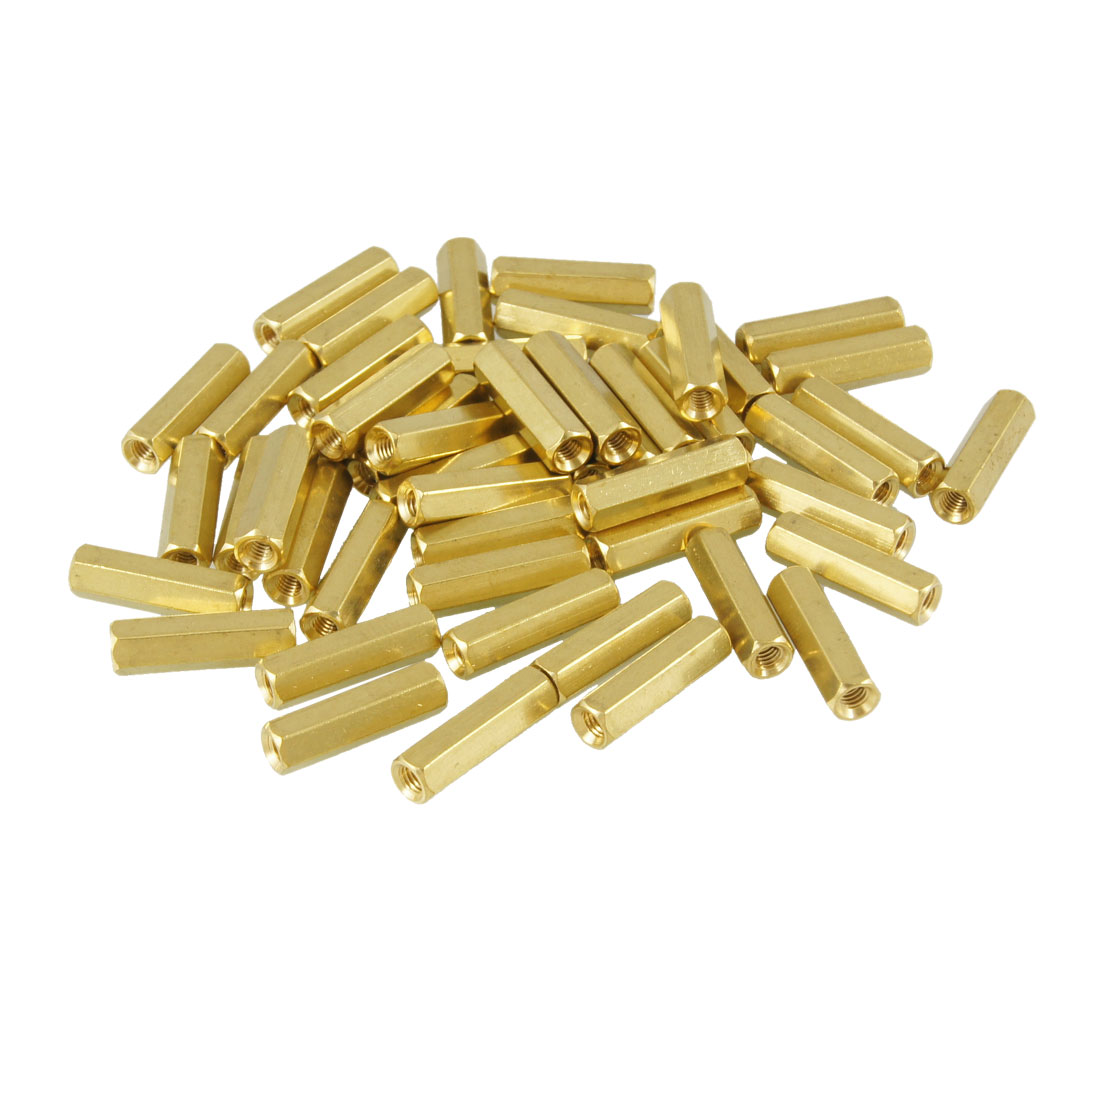 50 Pcs M3X17mm Hex Head Female Thread PCB Standoff Spacers